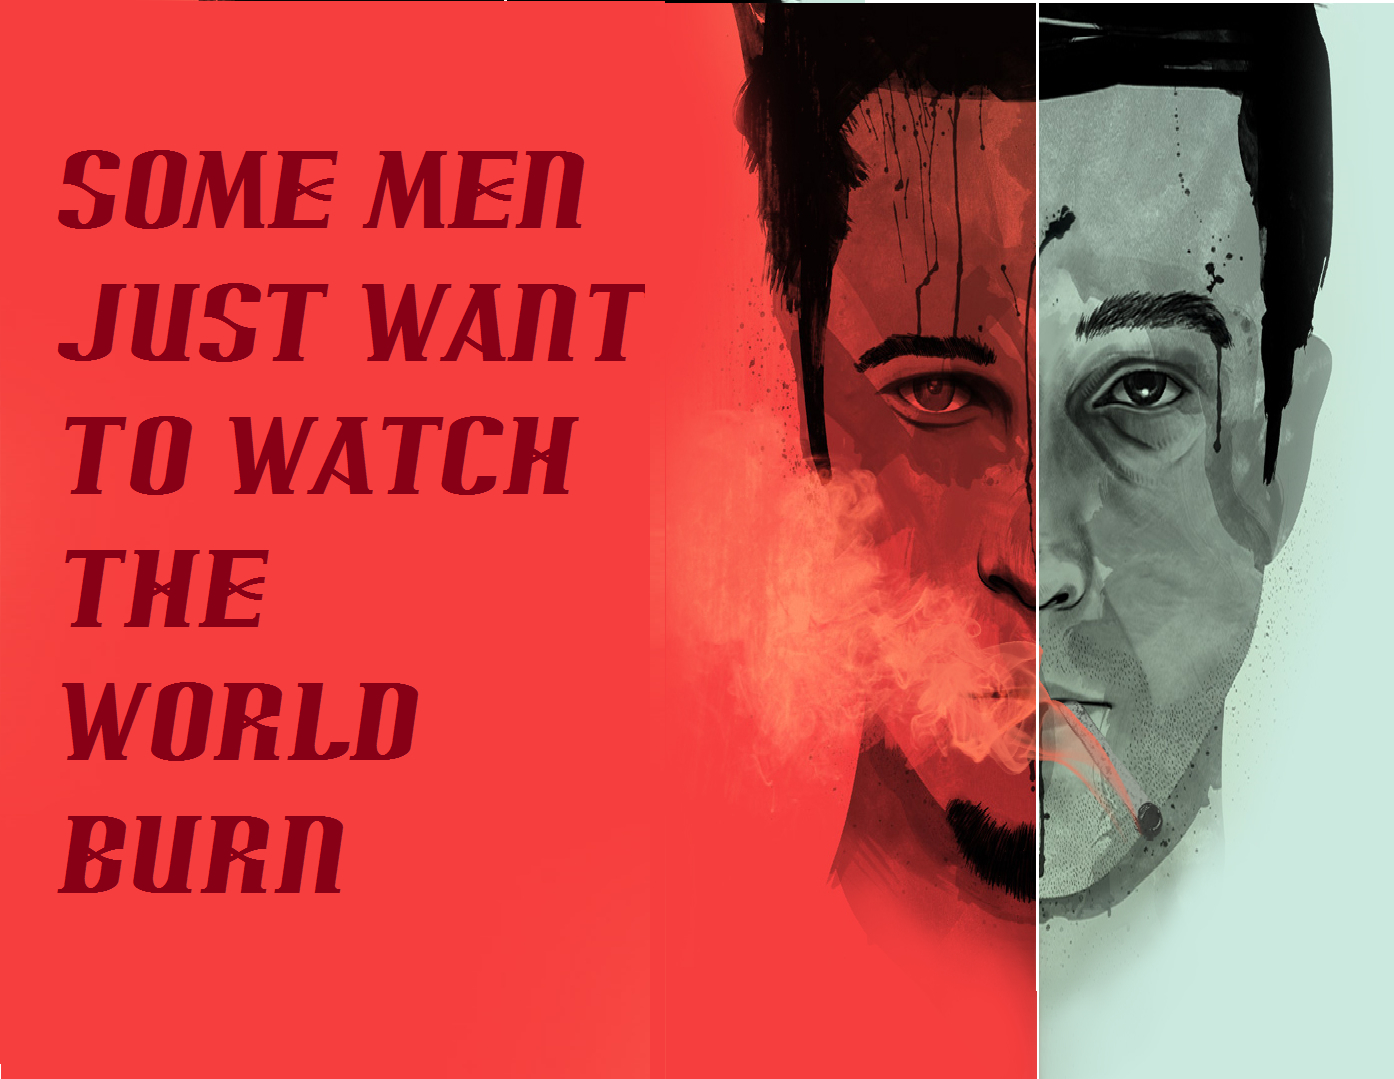 Movies fight club Movie HD Wallpaper